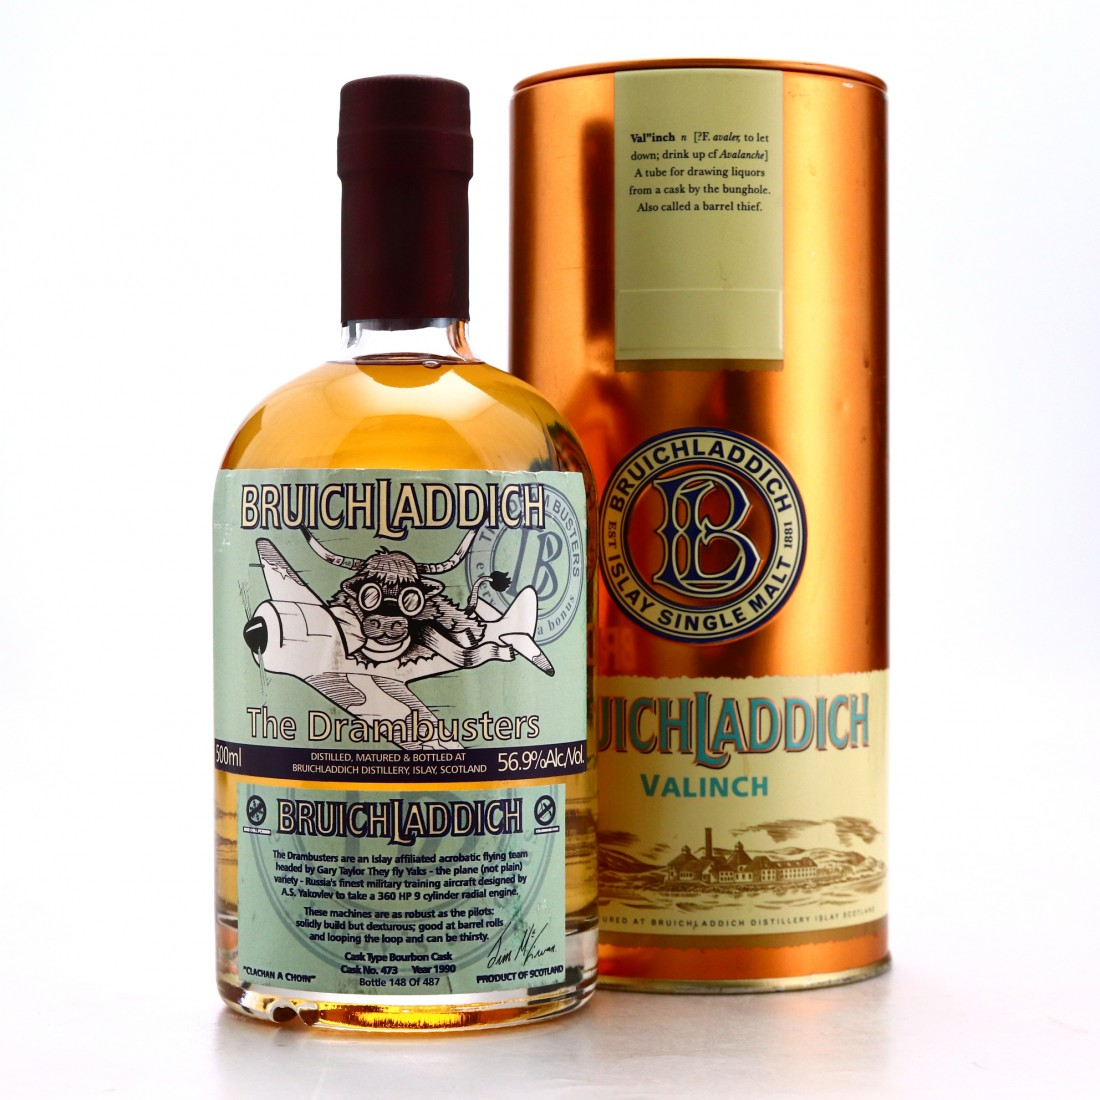 Bruichladdich 1990 Valinch 'The Drambusters'